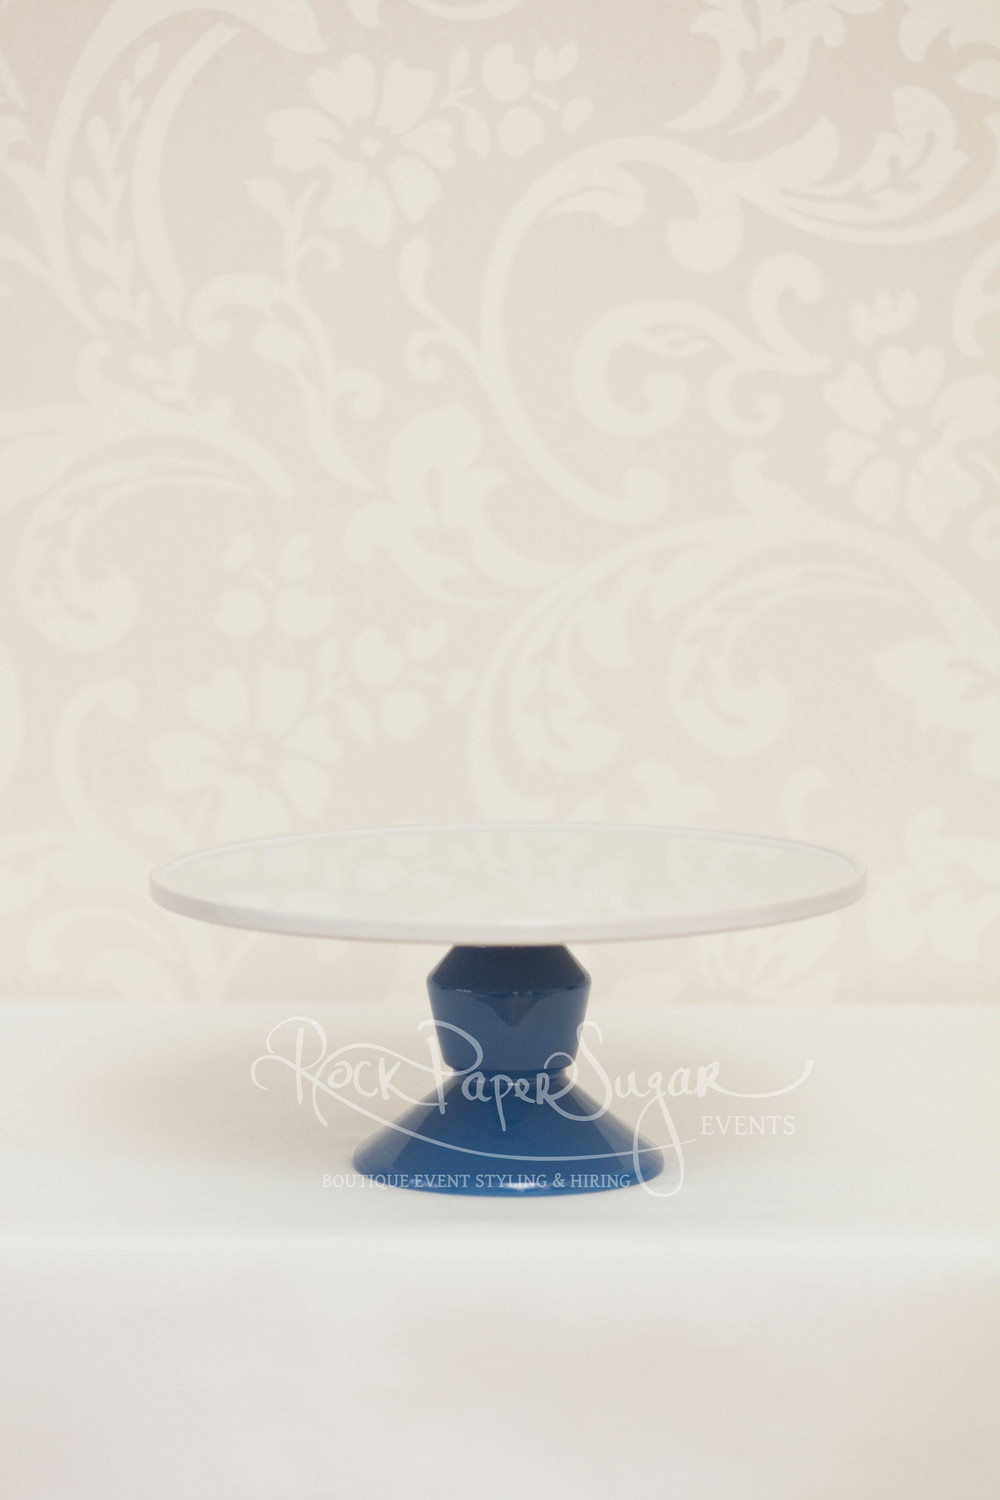 Rock Paper Sugar Events Cake Stands 010.jpg